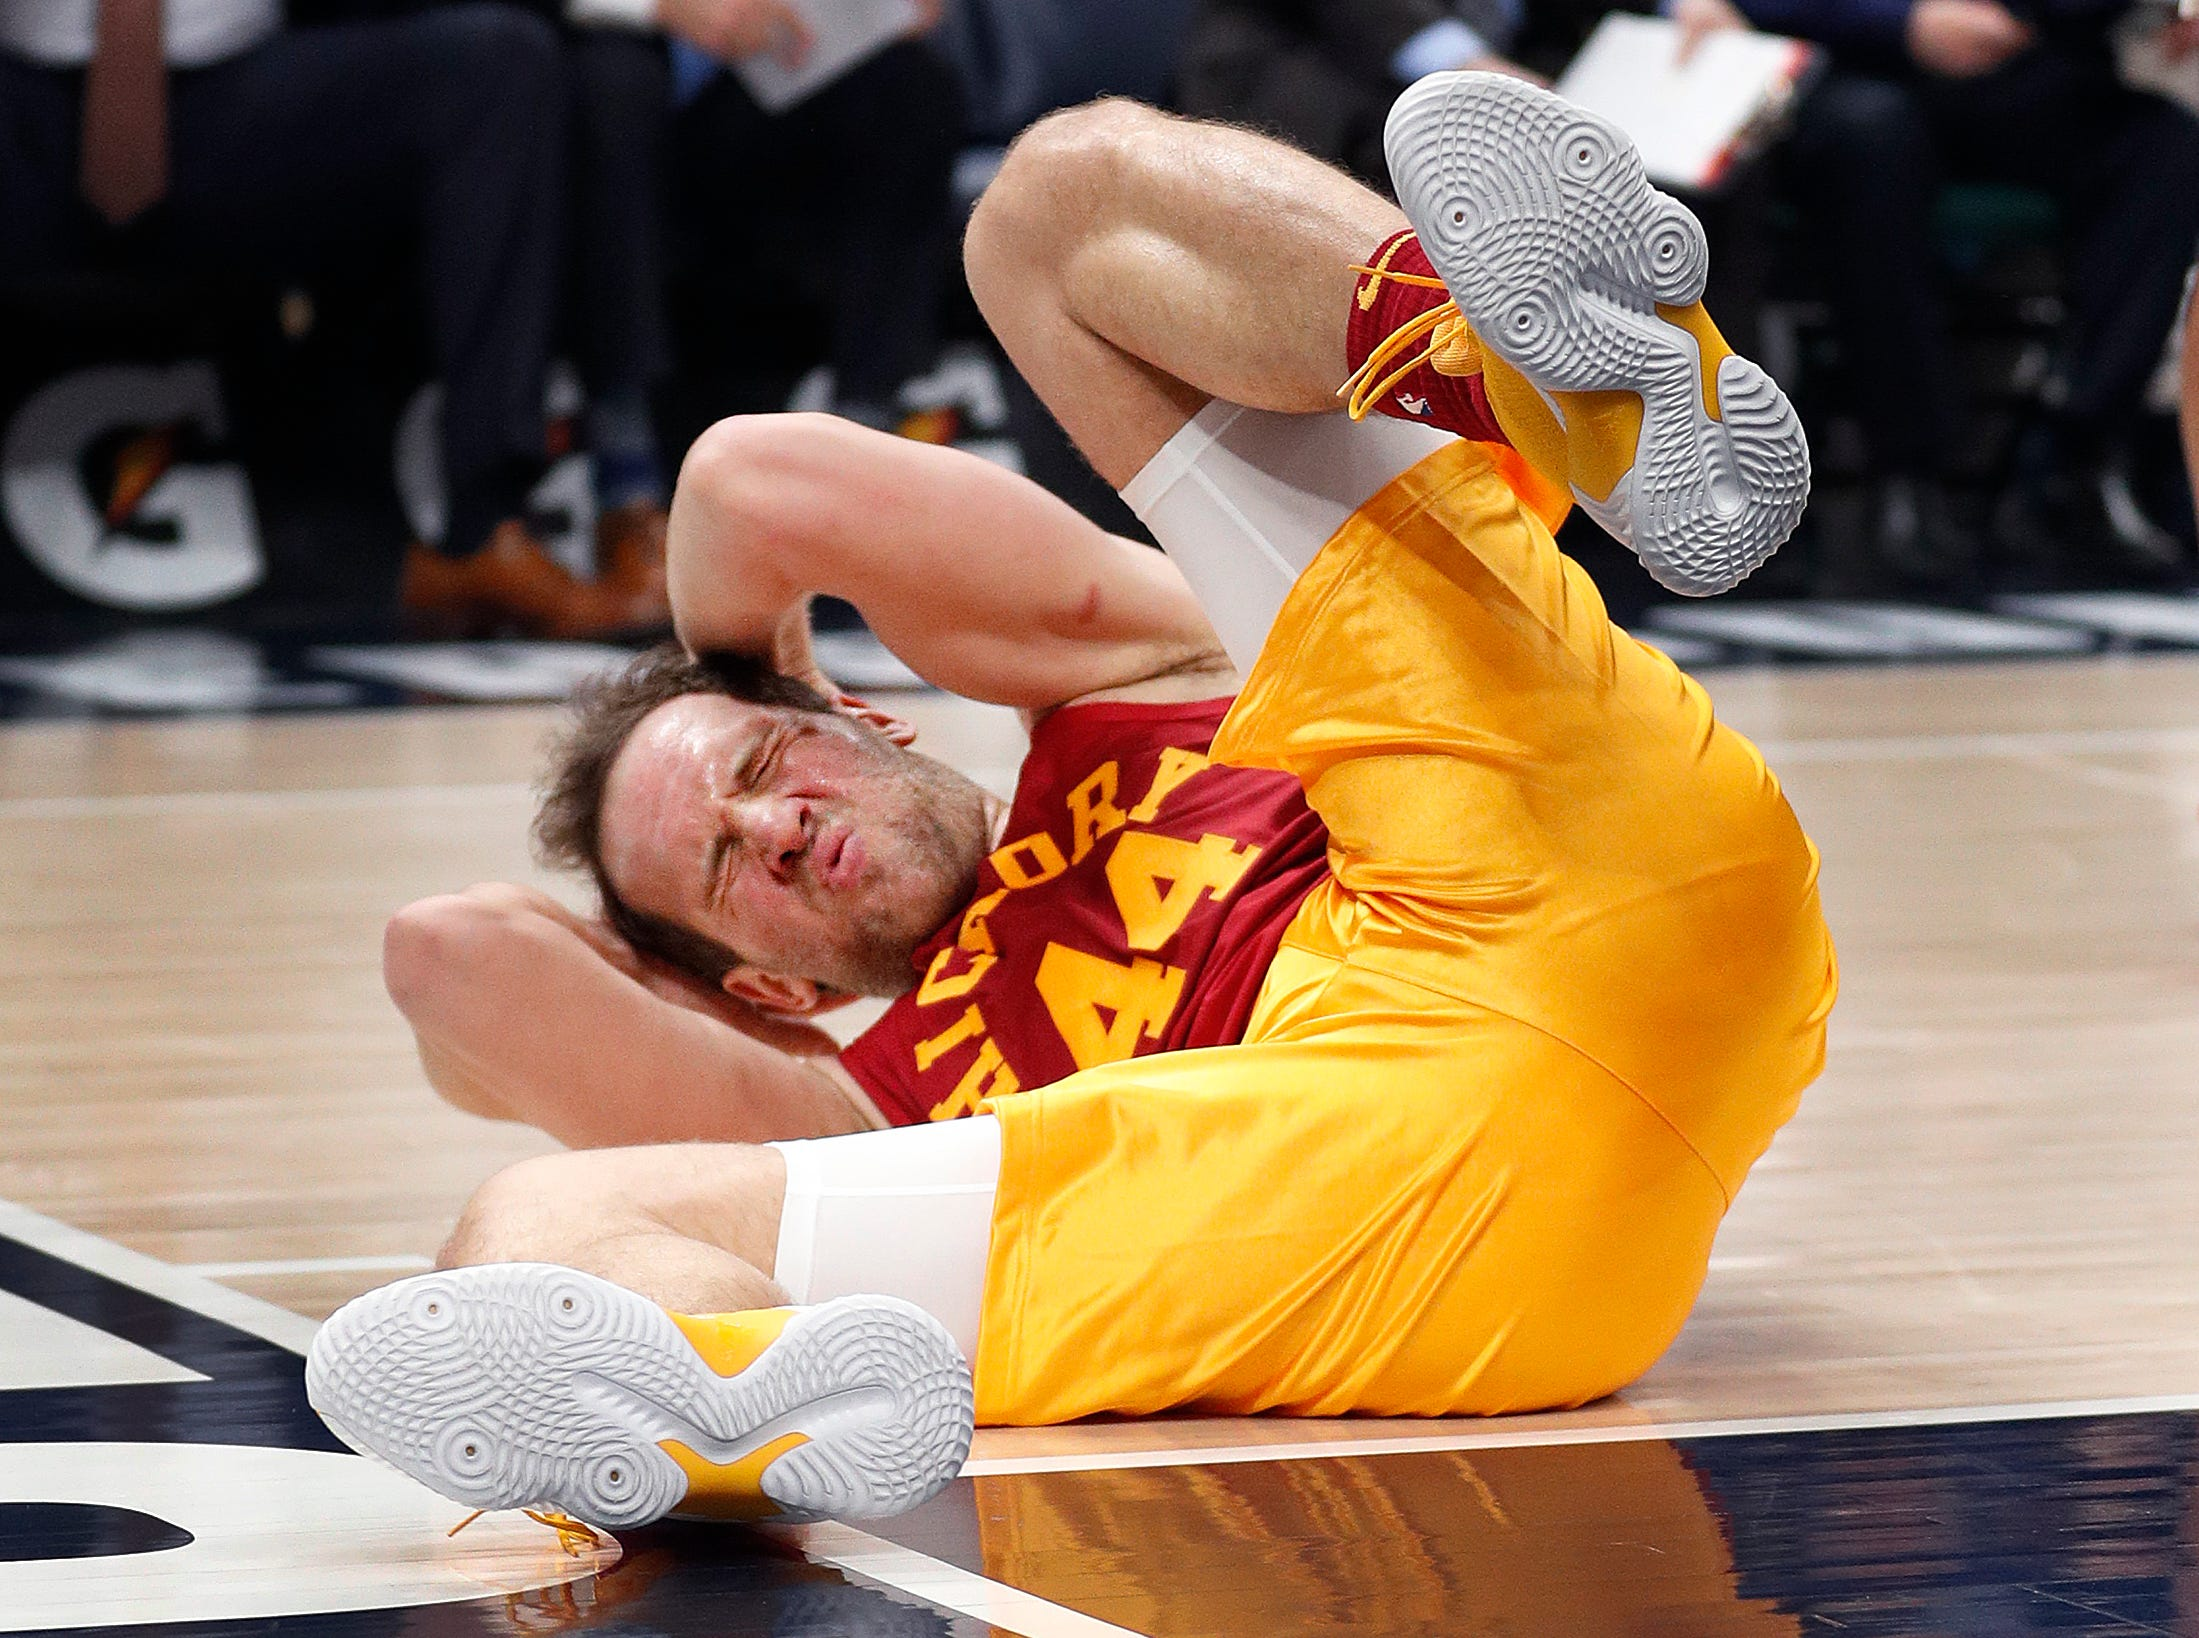 Indiana Pacers forward Bojan Bogdanovic (44) holds his head after falling to the court after he was fouled by LA Clippers forward Montrezl Harrell (5) in the first half of their game at Bankers Life Fieldhouse on Thursday, Feb. 7, 2019.